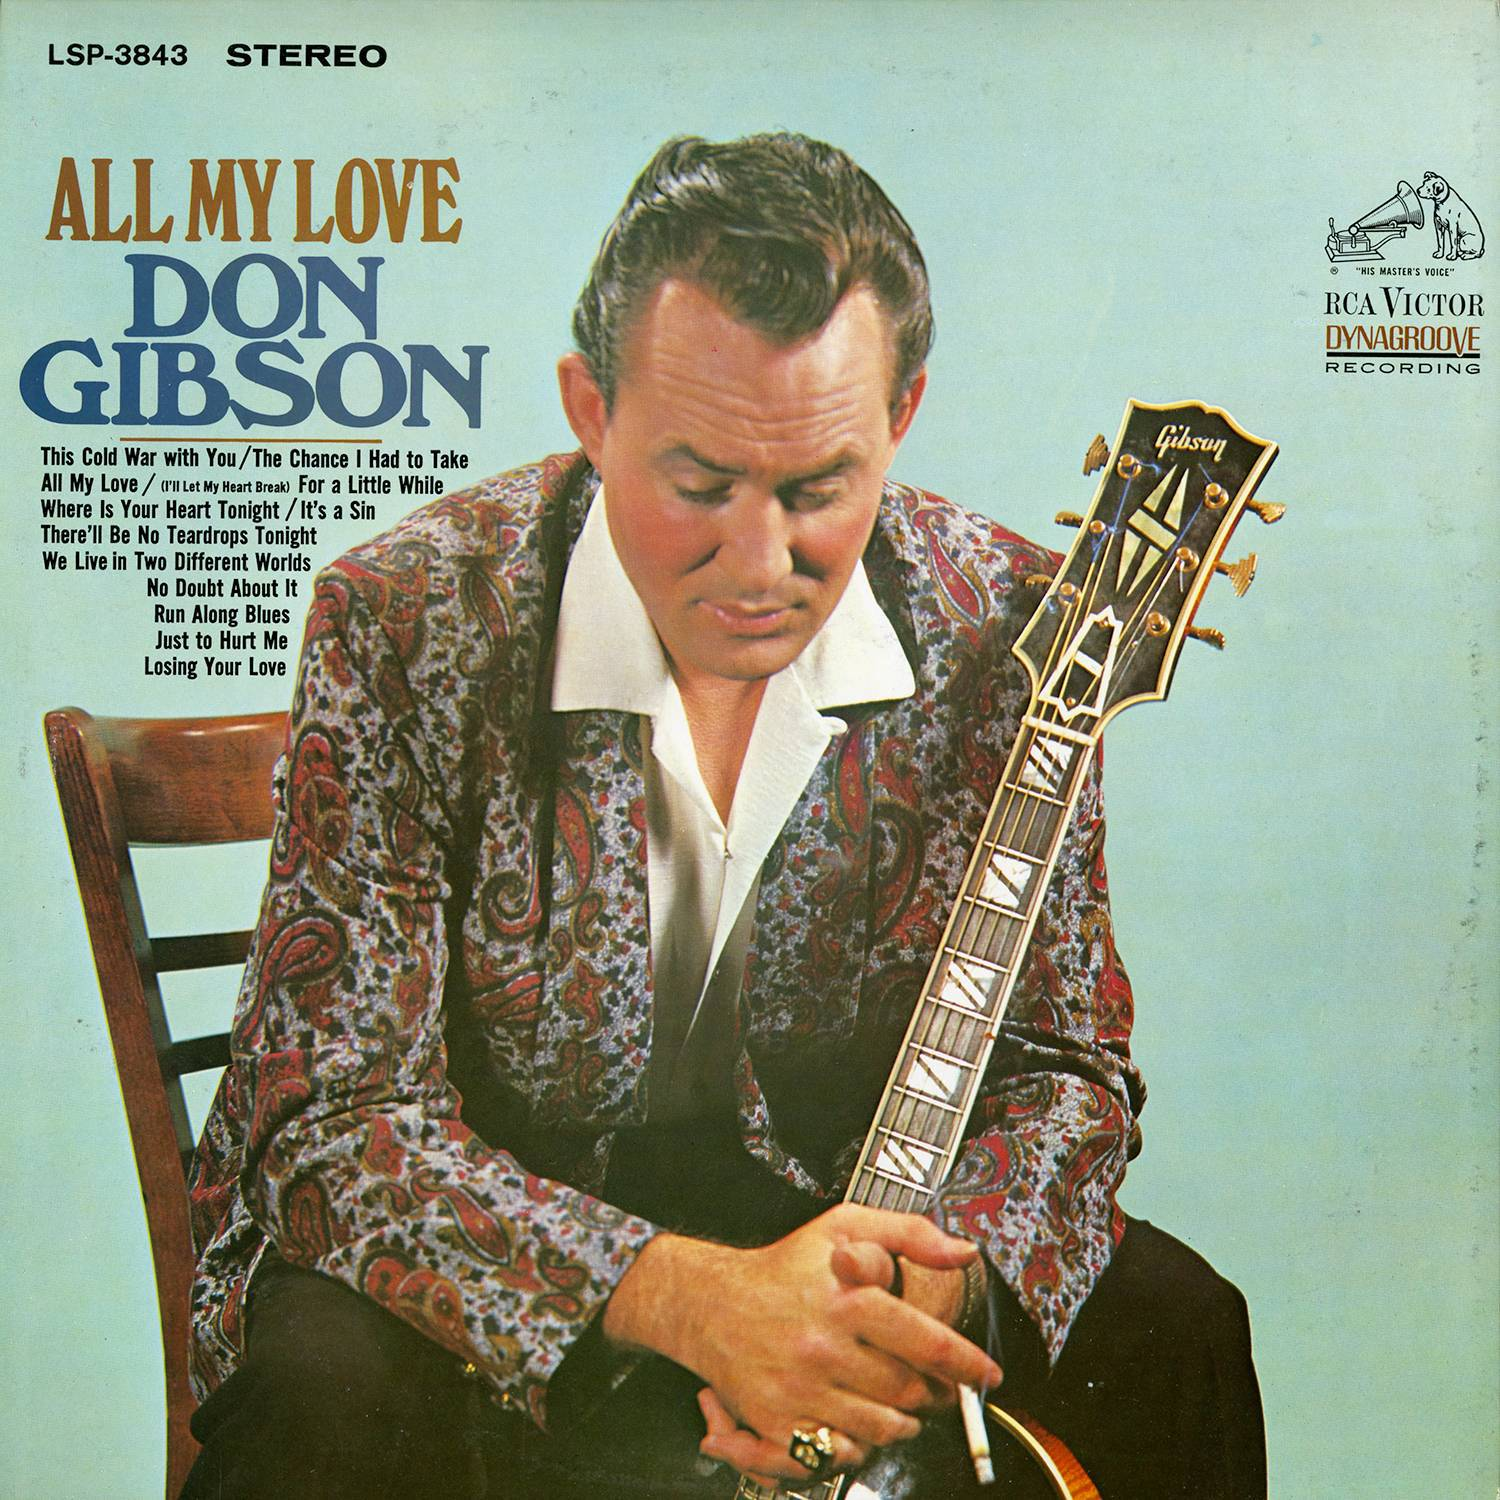 Don gibson: some favorites of mine at records by mail